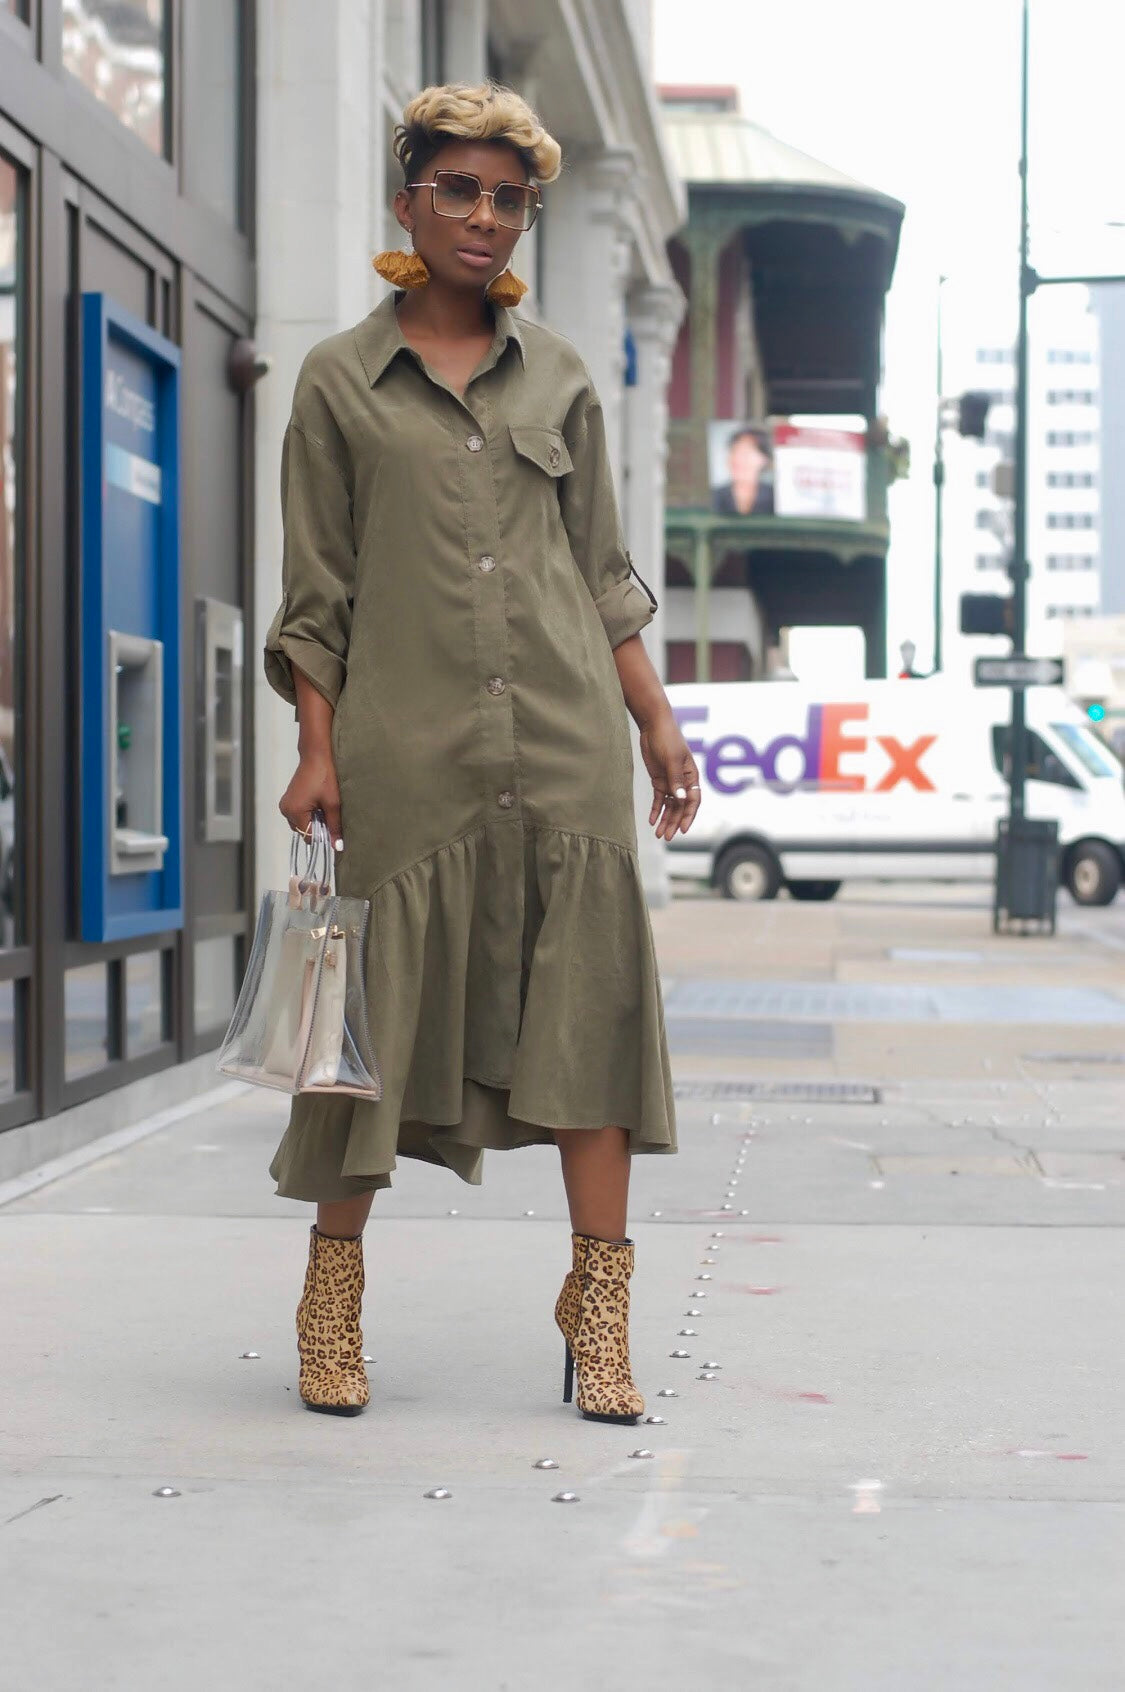 Olive Suede Midi Dress (Limited Quantities)